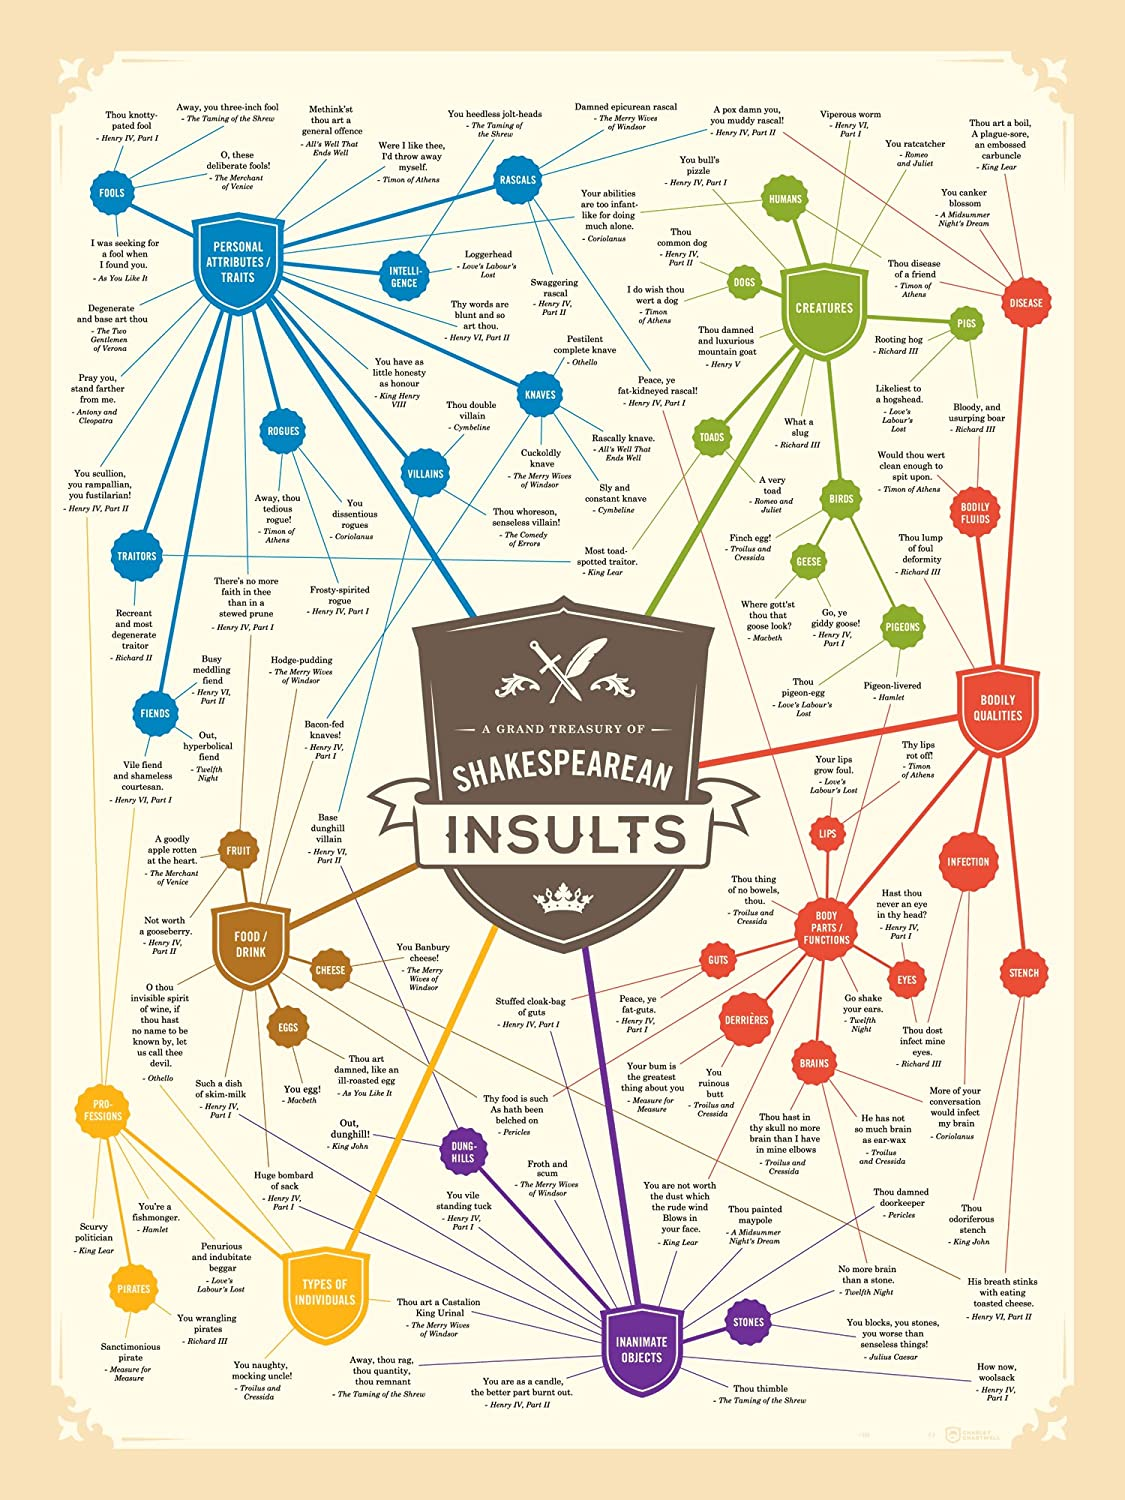 Shakespeare Insults Gift Poster - Witty and Hilarious - Great Gift For All Lovers of Books, Regular Size 16x20 inches